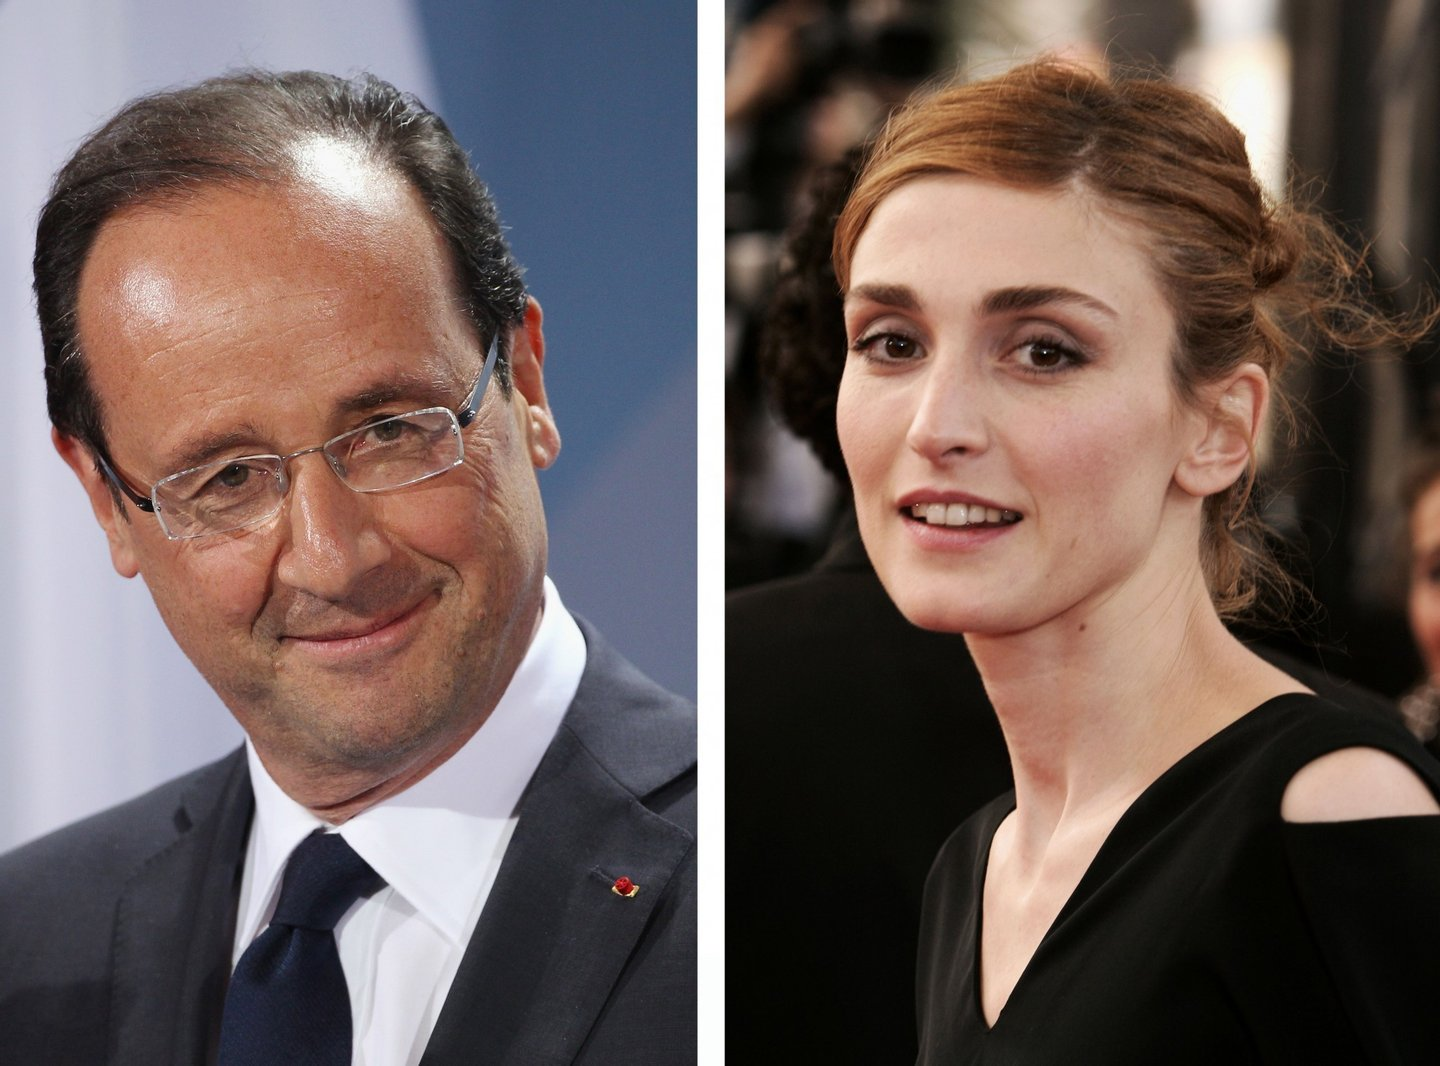 (FILE PHOTO) In this composite image a comparison has been made between Francois Hollande (L) and Julie Gayet. ***LEFT IMAGE***  BERLIN, GERMANY - MAY 15:  French President Francois Hollande speaks to the media following talks at the Chancellery hours after Hollande's inauguration in Paris on May 15, 2012 in Berlin, Germany. Hollande has come to Berlin to discuss the current European debt crisis with Merkel and most importantly to find common ground, as he hopes to resolve the crisis with measures that mark a departure from the austerity packages favoured by Merkel.  (Photo by Sean Gallup/Getty Images) ***RIGHT IMAGE*** CANNES, FRANCE - MAY 12: Actress Julie Gayet attends the premiere of the film 'Match Point' at the Palais during the 58th International Cannes Film Festival May 12, 2005 in Cannes, France. (Photo by Pascal Le Segretain/Getty Images)